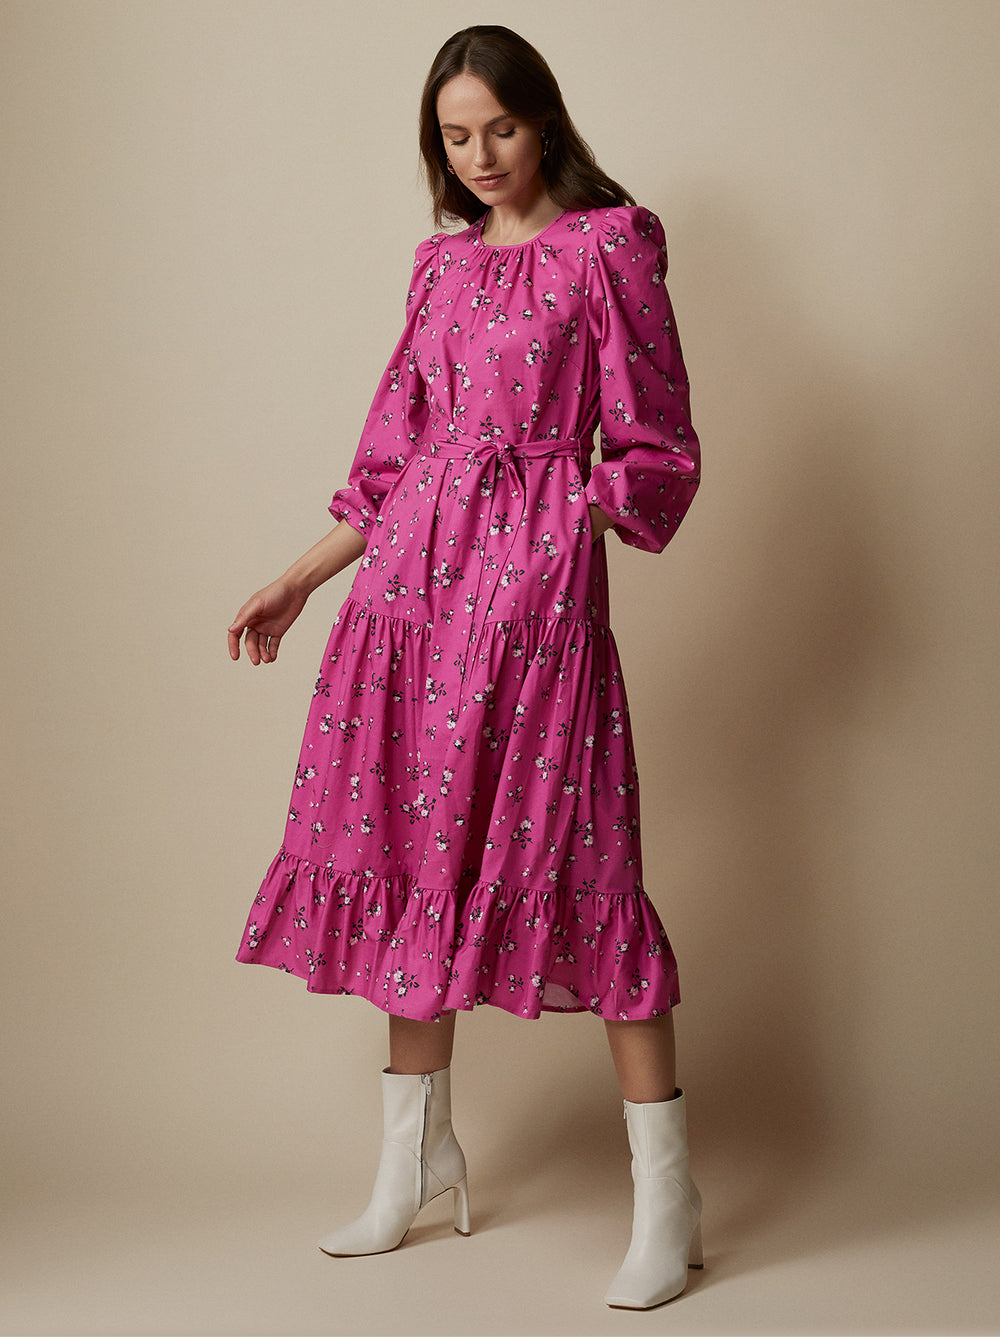 Alana Pink Floral Midi Dress by KITRI Studio